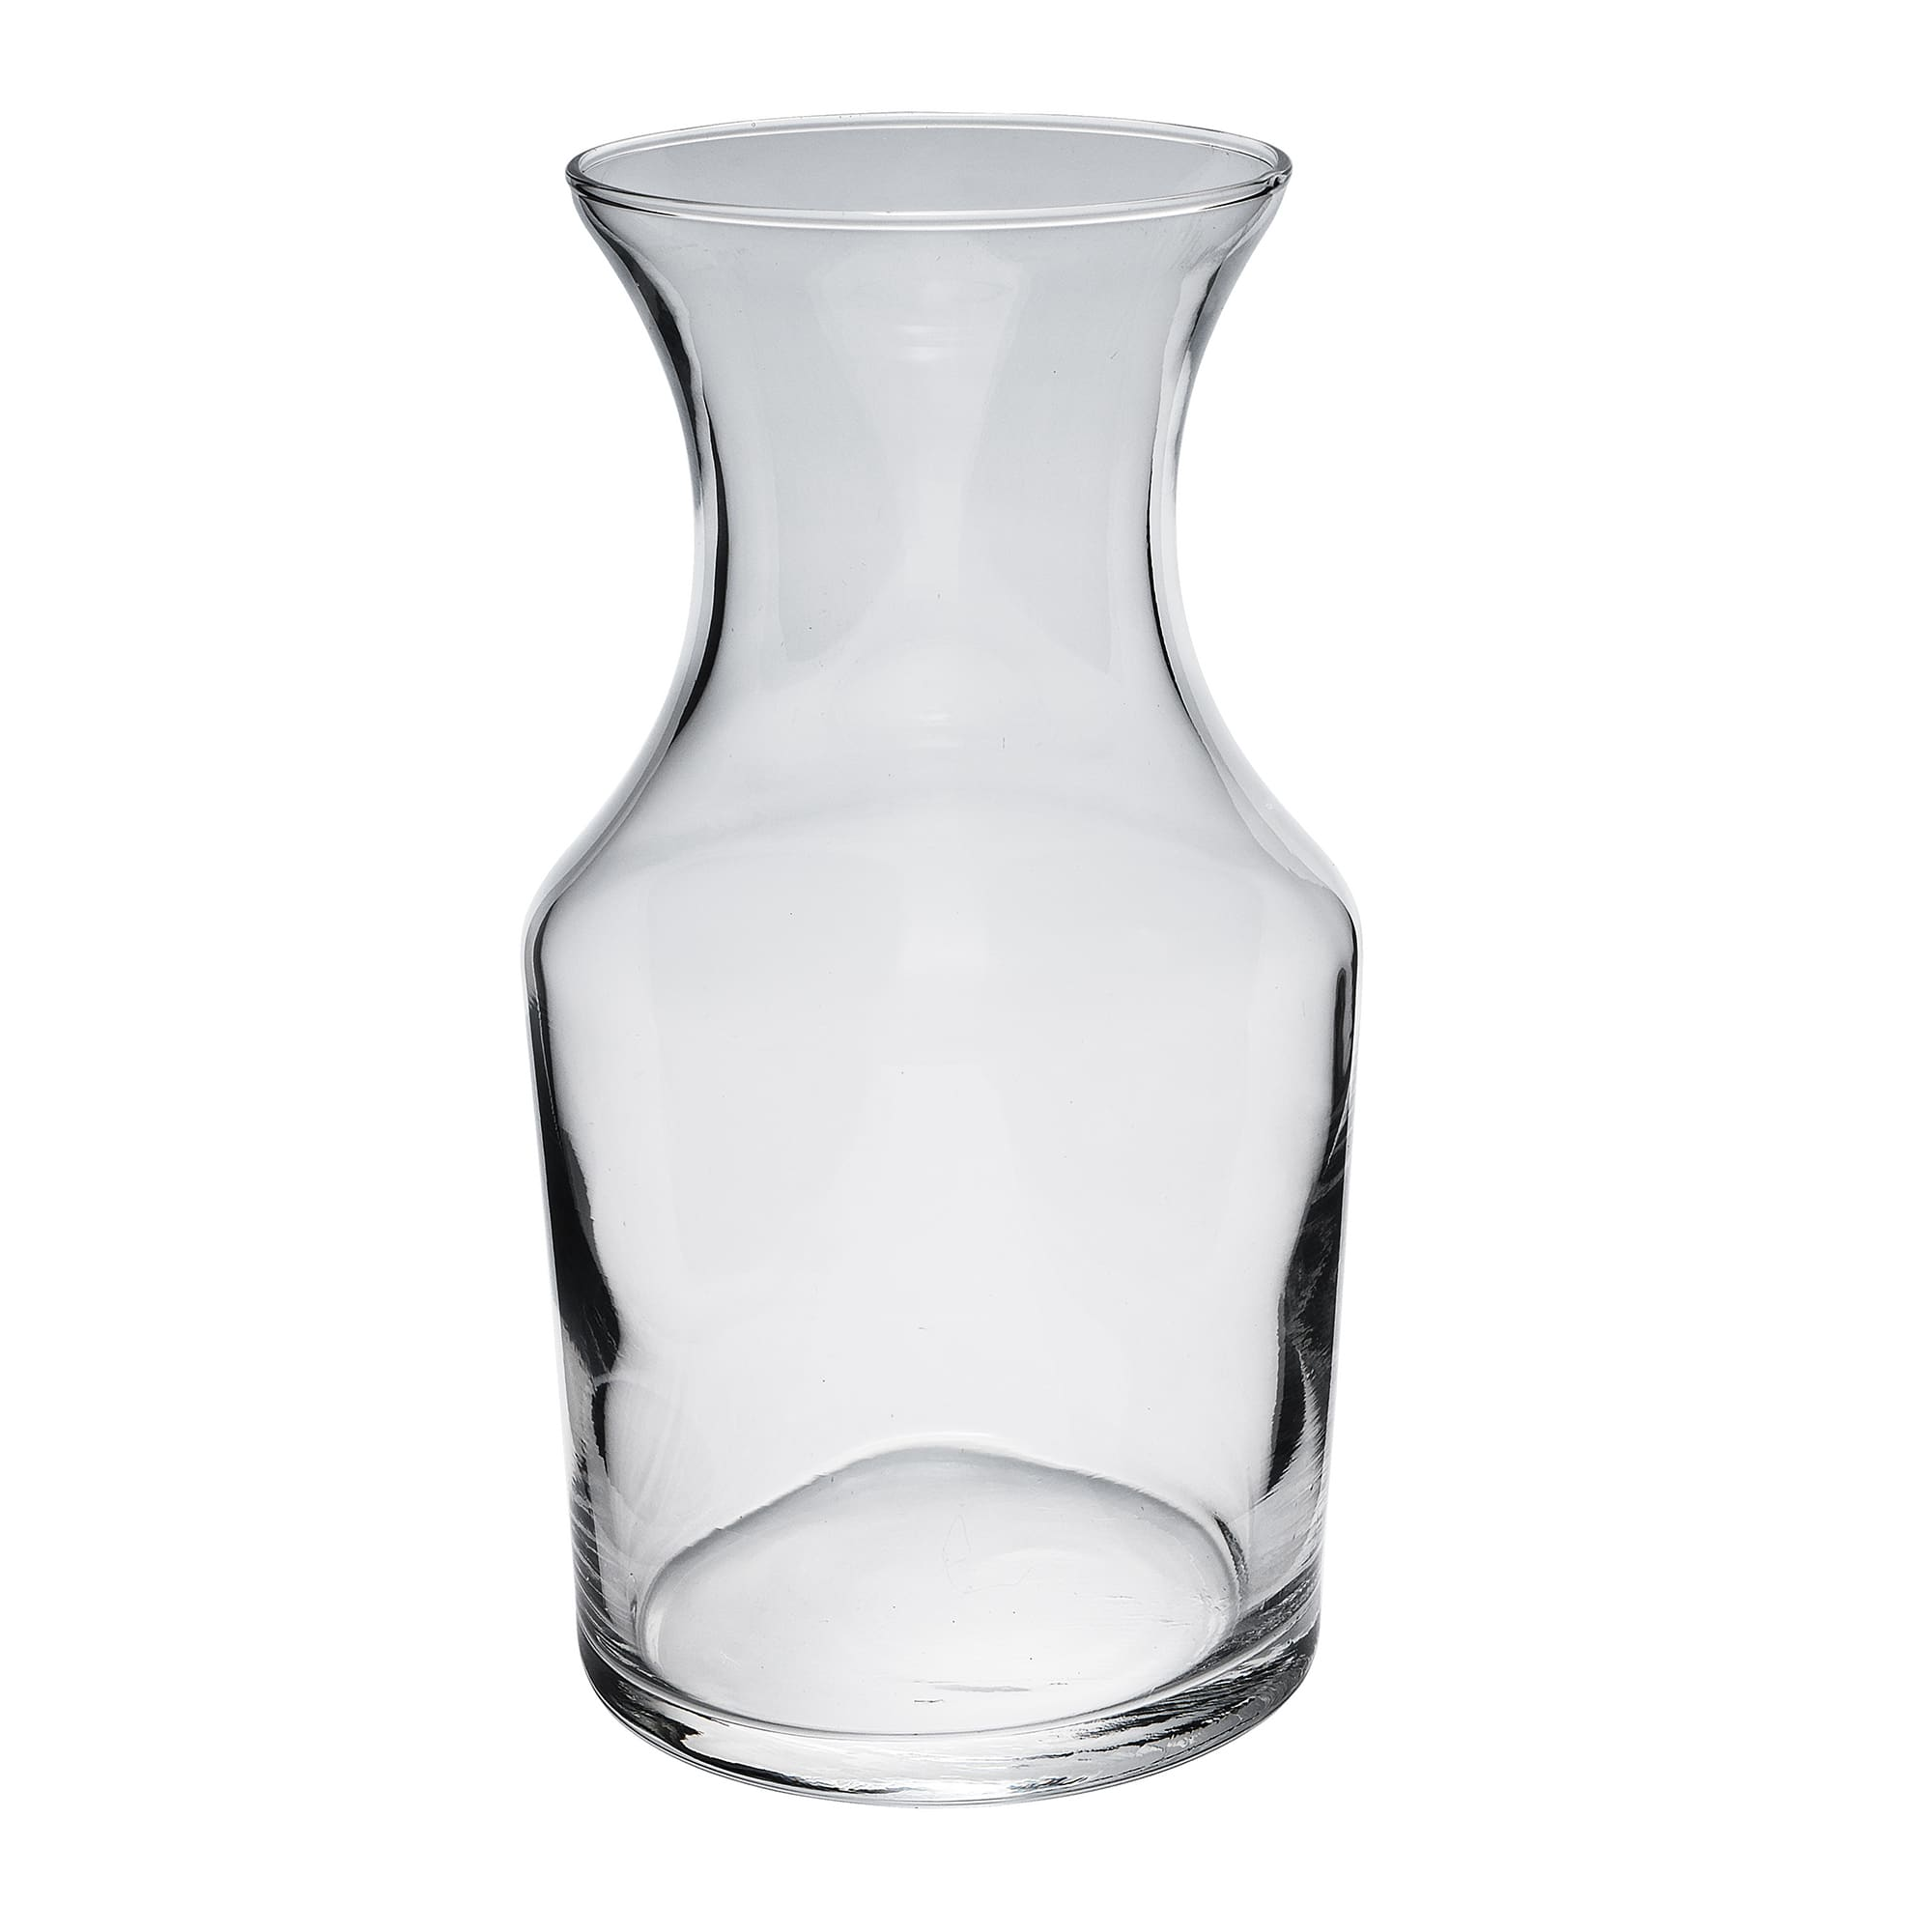 Libbey 719 8.5 oz Glass Cocktail Decanter Bud Vase